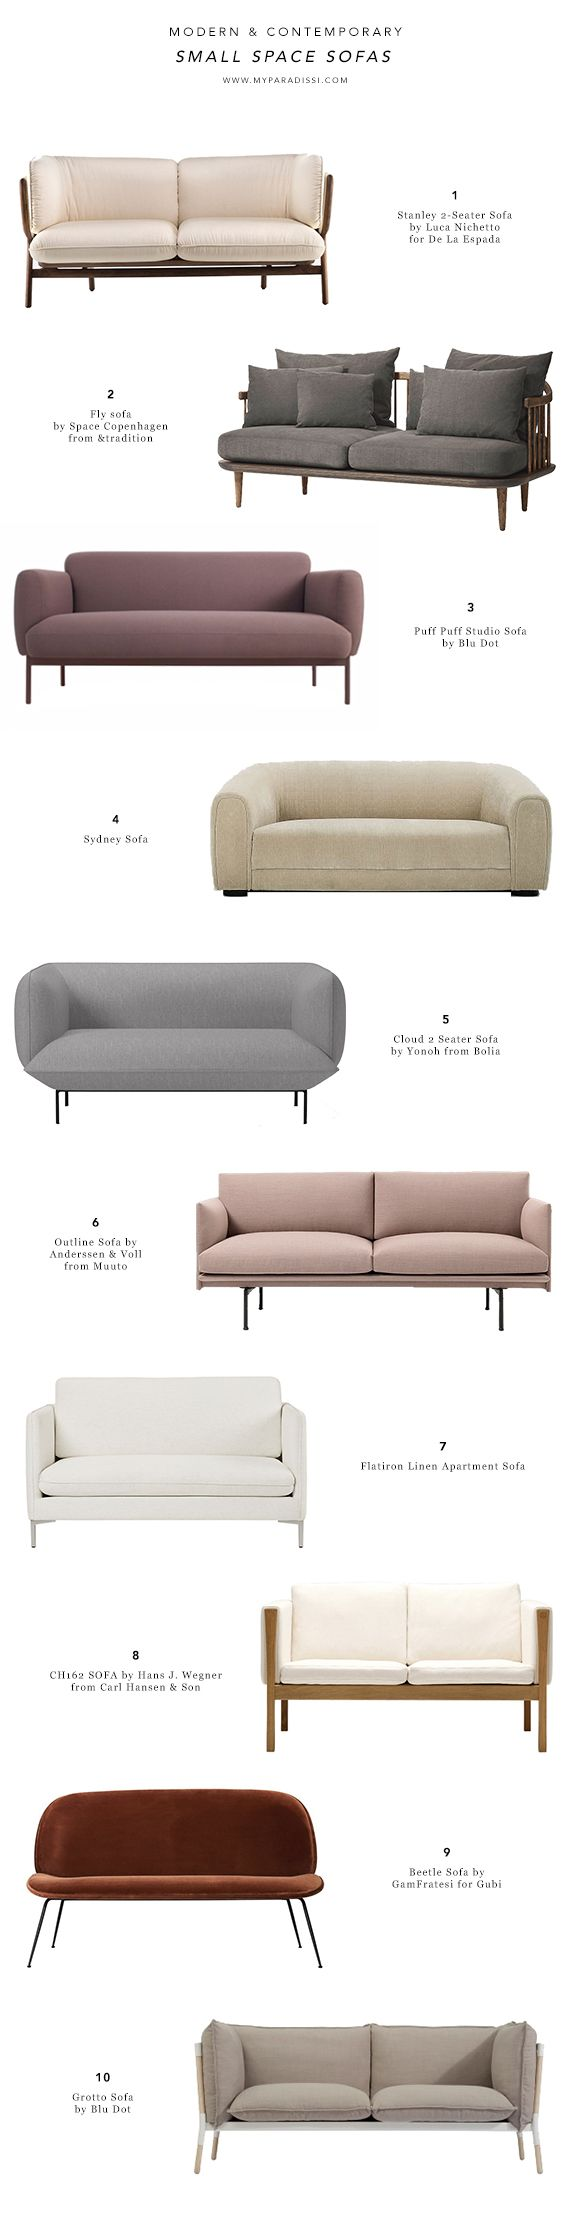 10 best small space sofas